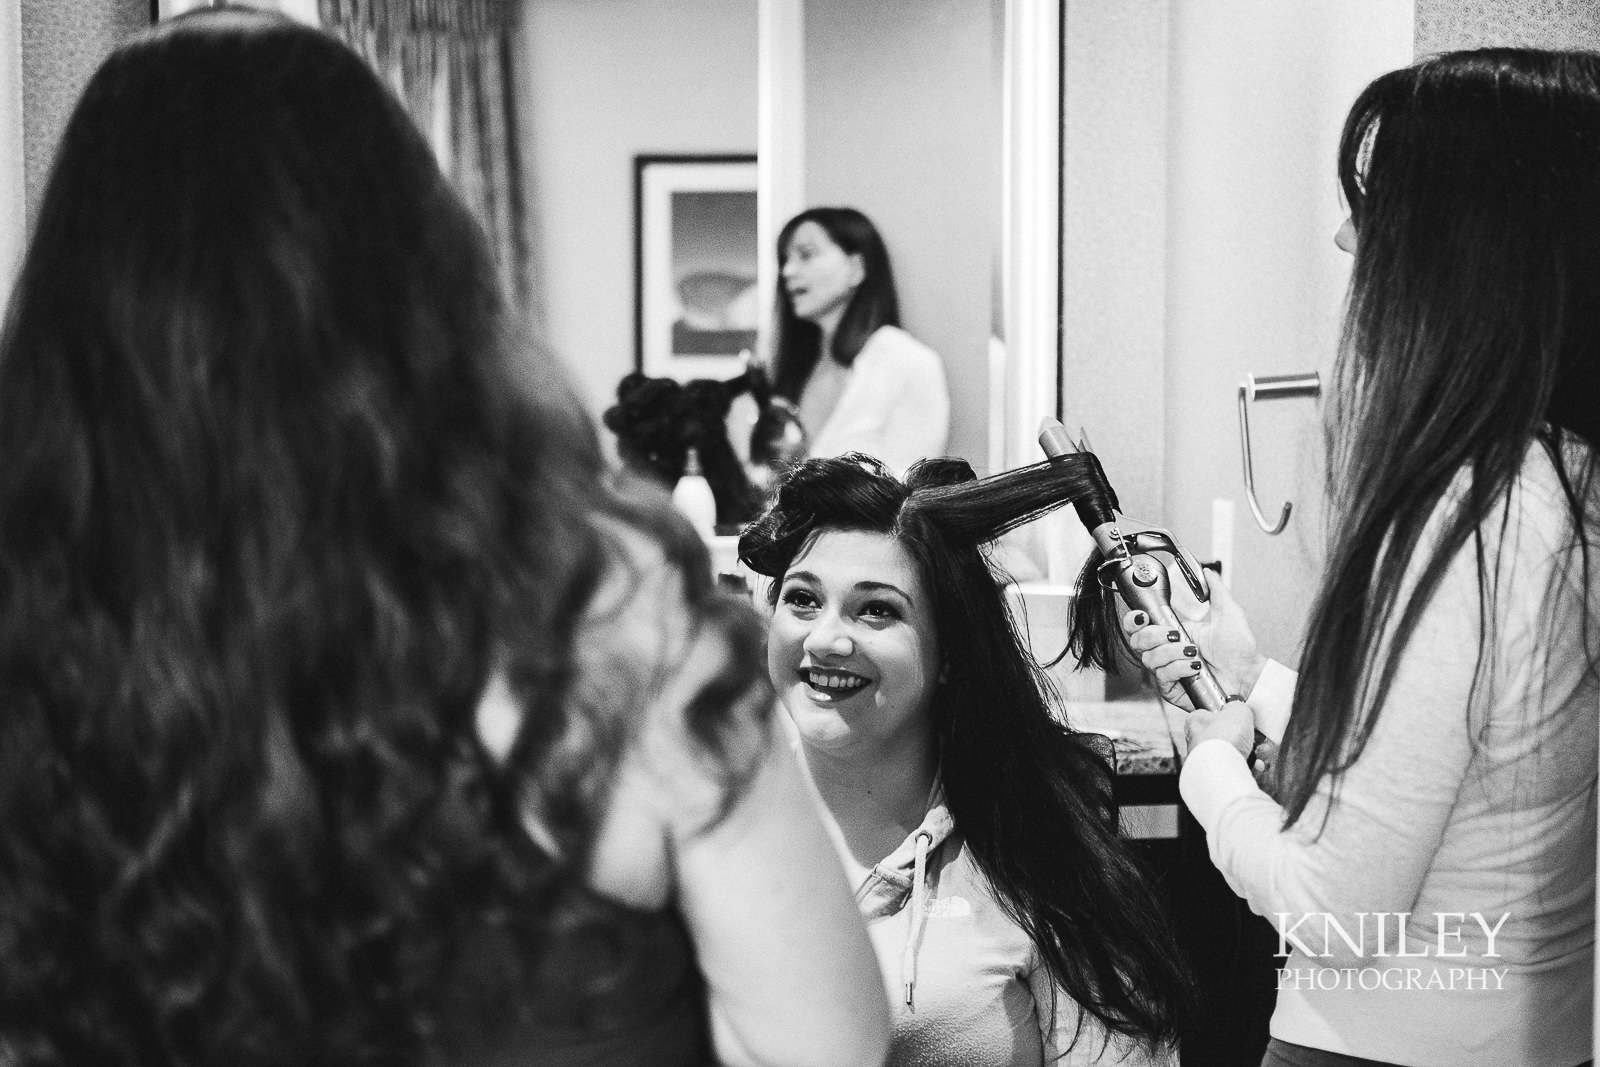 001 - Strathallan Hotel - Rochester NY wedding getting ready pictures - XT2B4260.jpg